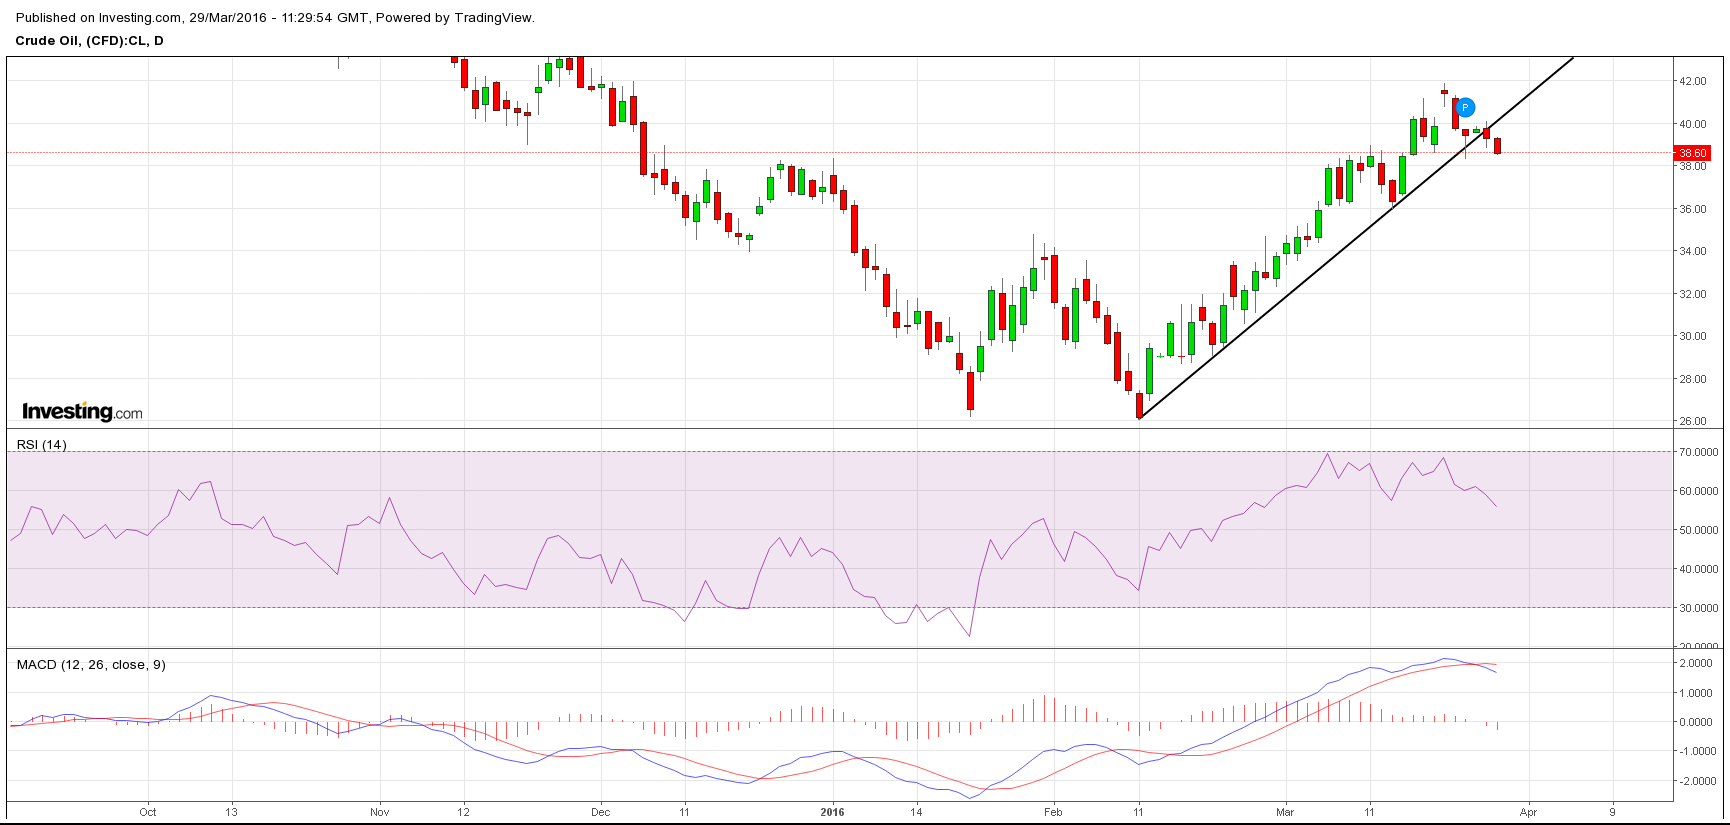 WTI turning back lower, breaking uptrend from early February- Under 38.23 should allow for weakness down to near 35, which would likely coincide with at least minor weakness in stocks